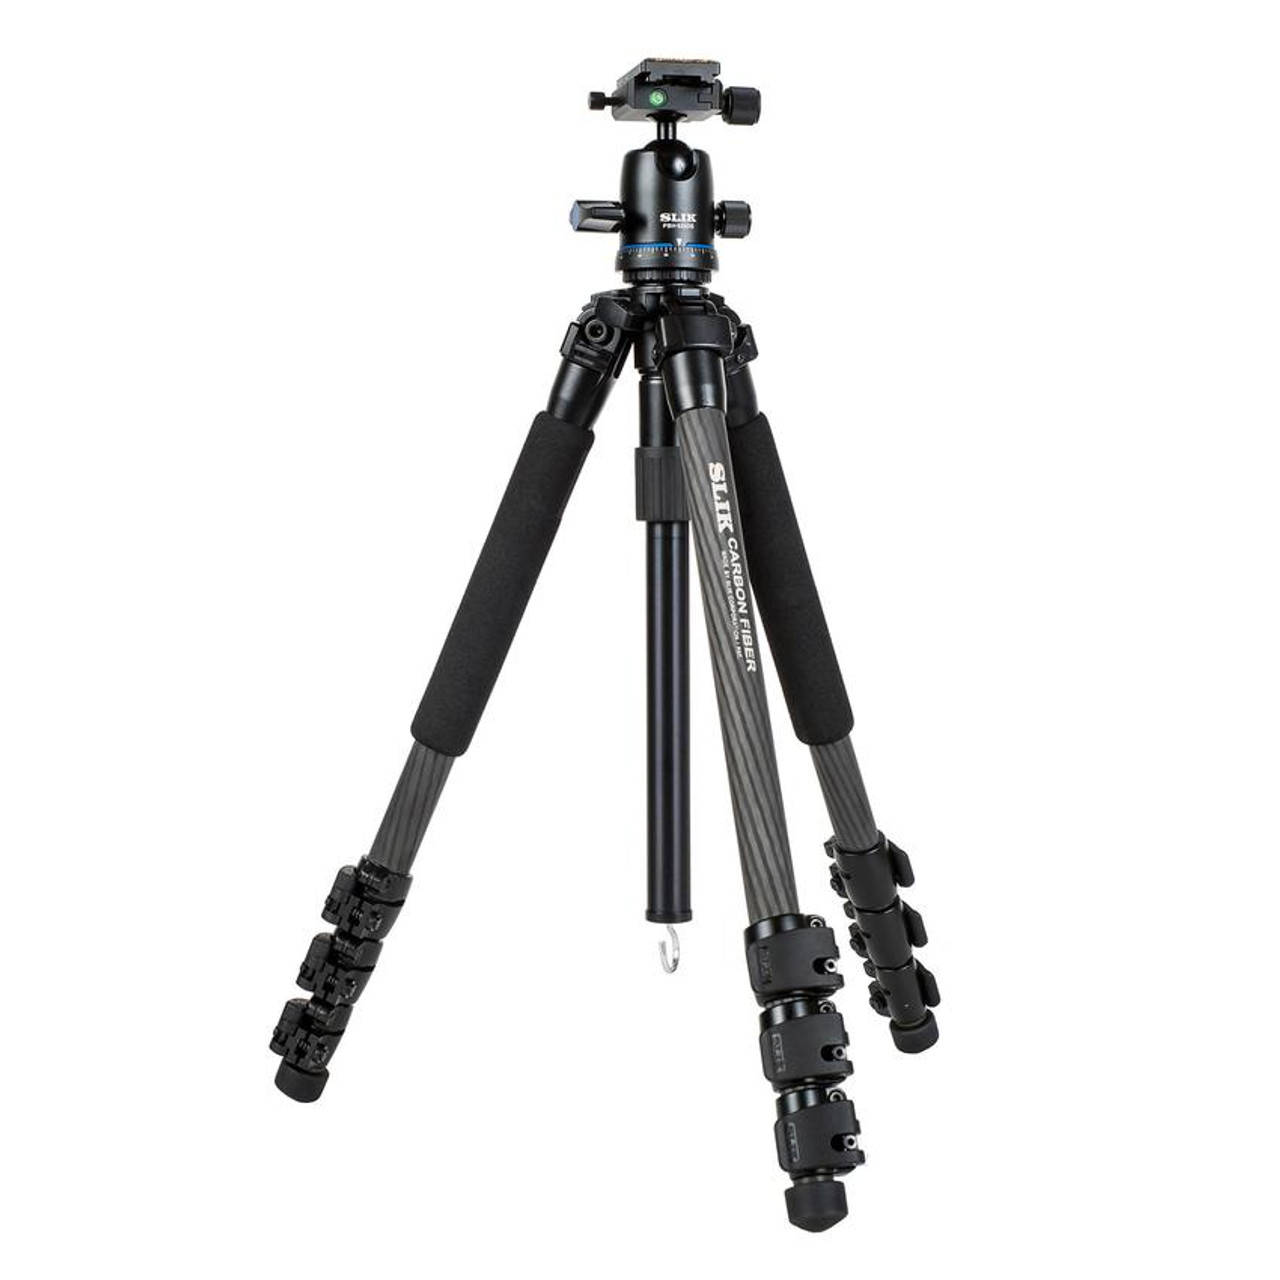 SLIK PRO 724 CARBON FIBER TRIPOD W/ BALL HEAD